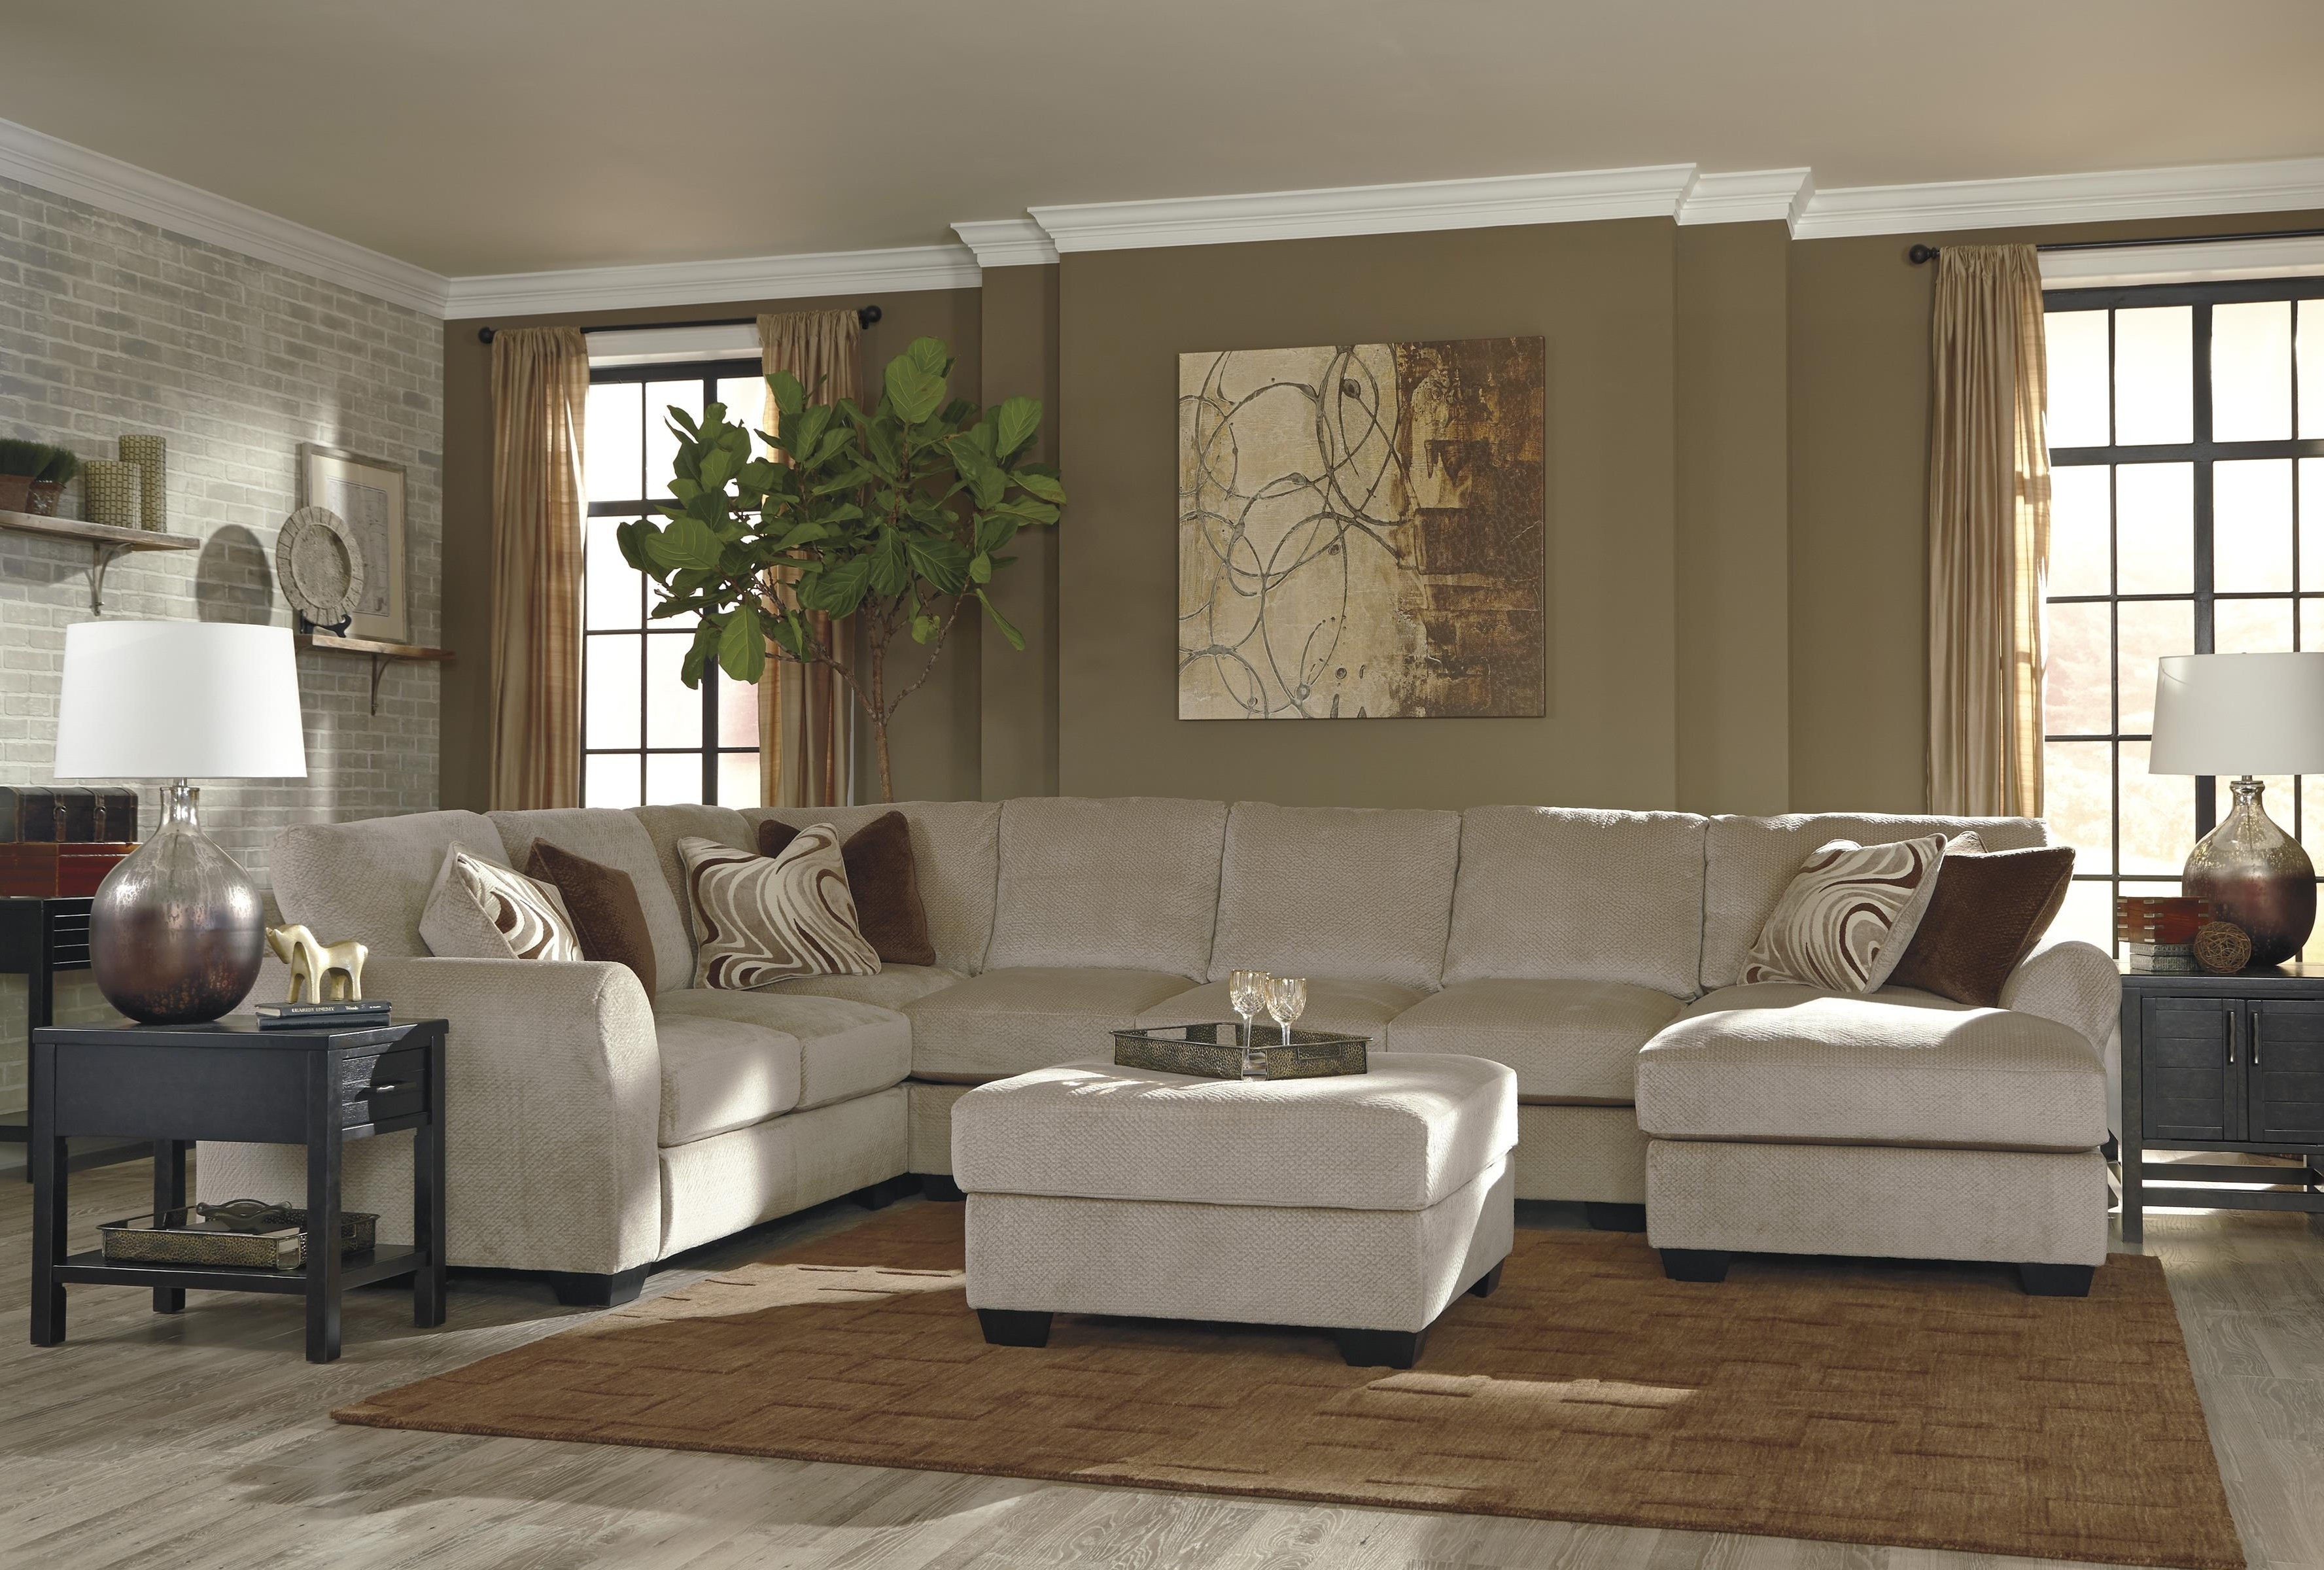 Widely Used 4 Piece Sectional Sofas With Chaise Intended For 4 Piece Sectional W/ Armless Sofa & Left Chaisebenchcraft (View 11 of 15)